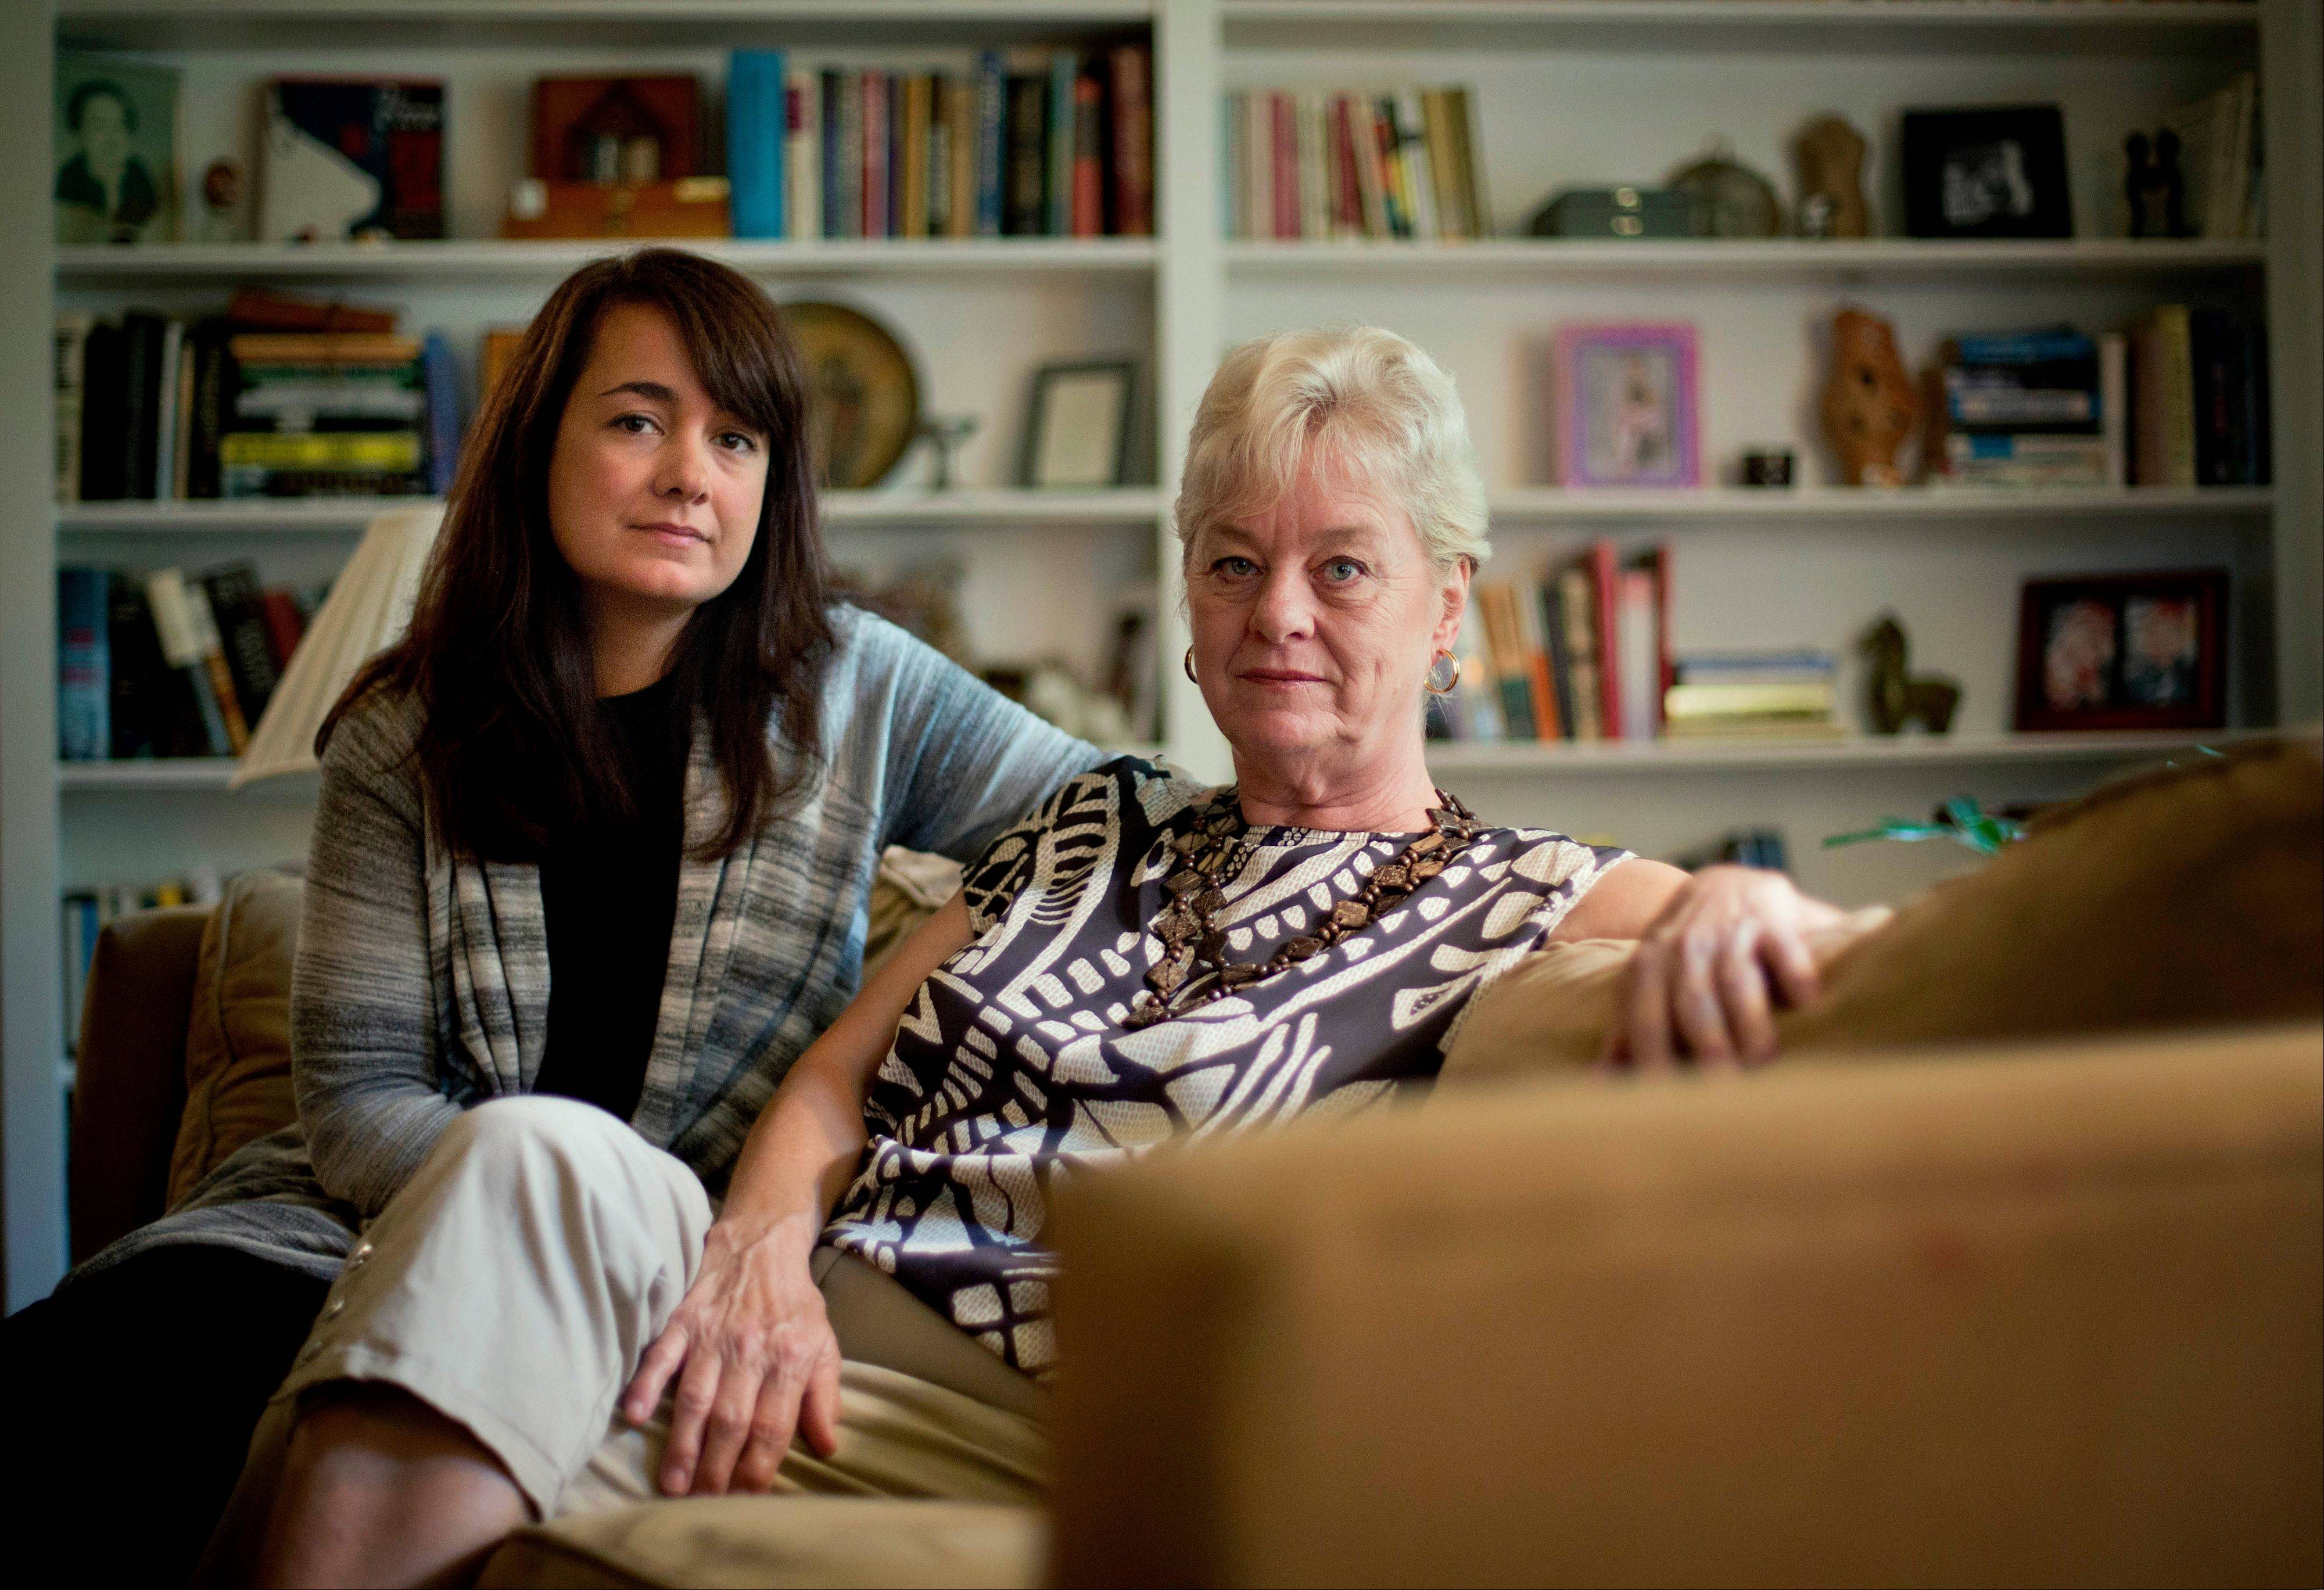 Associated Press Keely Walker Muse, left, sits with her mother Eve Walker in the living room of her home in Atlanta, Saturday, Aug. 17. Mexican drug lord Rafael Caro Quintero was sentenced to 40 years in prison for the 1985 murders of her father, journalist John Clay Walker, his friend Alberto Radelat, and DEA agent Enrique �Kiki� Camarena, among other crimes. According to witnesses interviewed by DEA agents hunting for Camarena�s killers, the cartel had mistaken Walker and Radelat for undercover agents. Caro Quintero walked free this month, 12 years early, after a local appeals court overturned his sentence for three of the murders. For the families of the six Americans slain before Camarena, the decision has awakened bitter memories of the brutality that ushered in the modern era of Mexican drug trafficking.